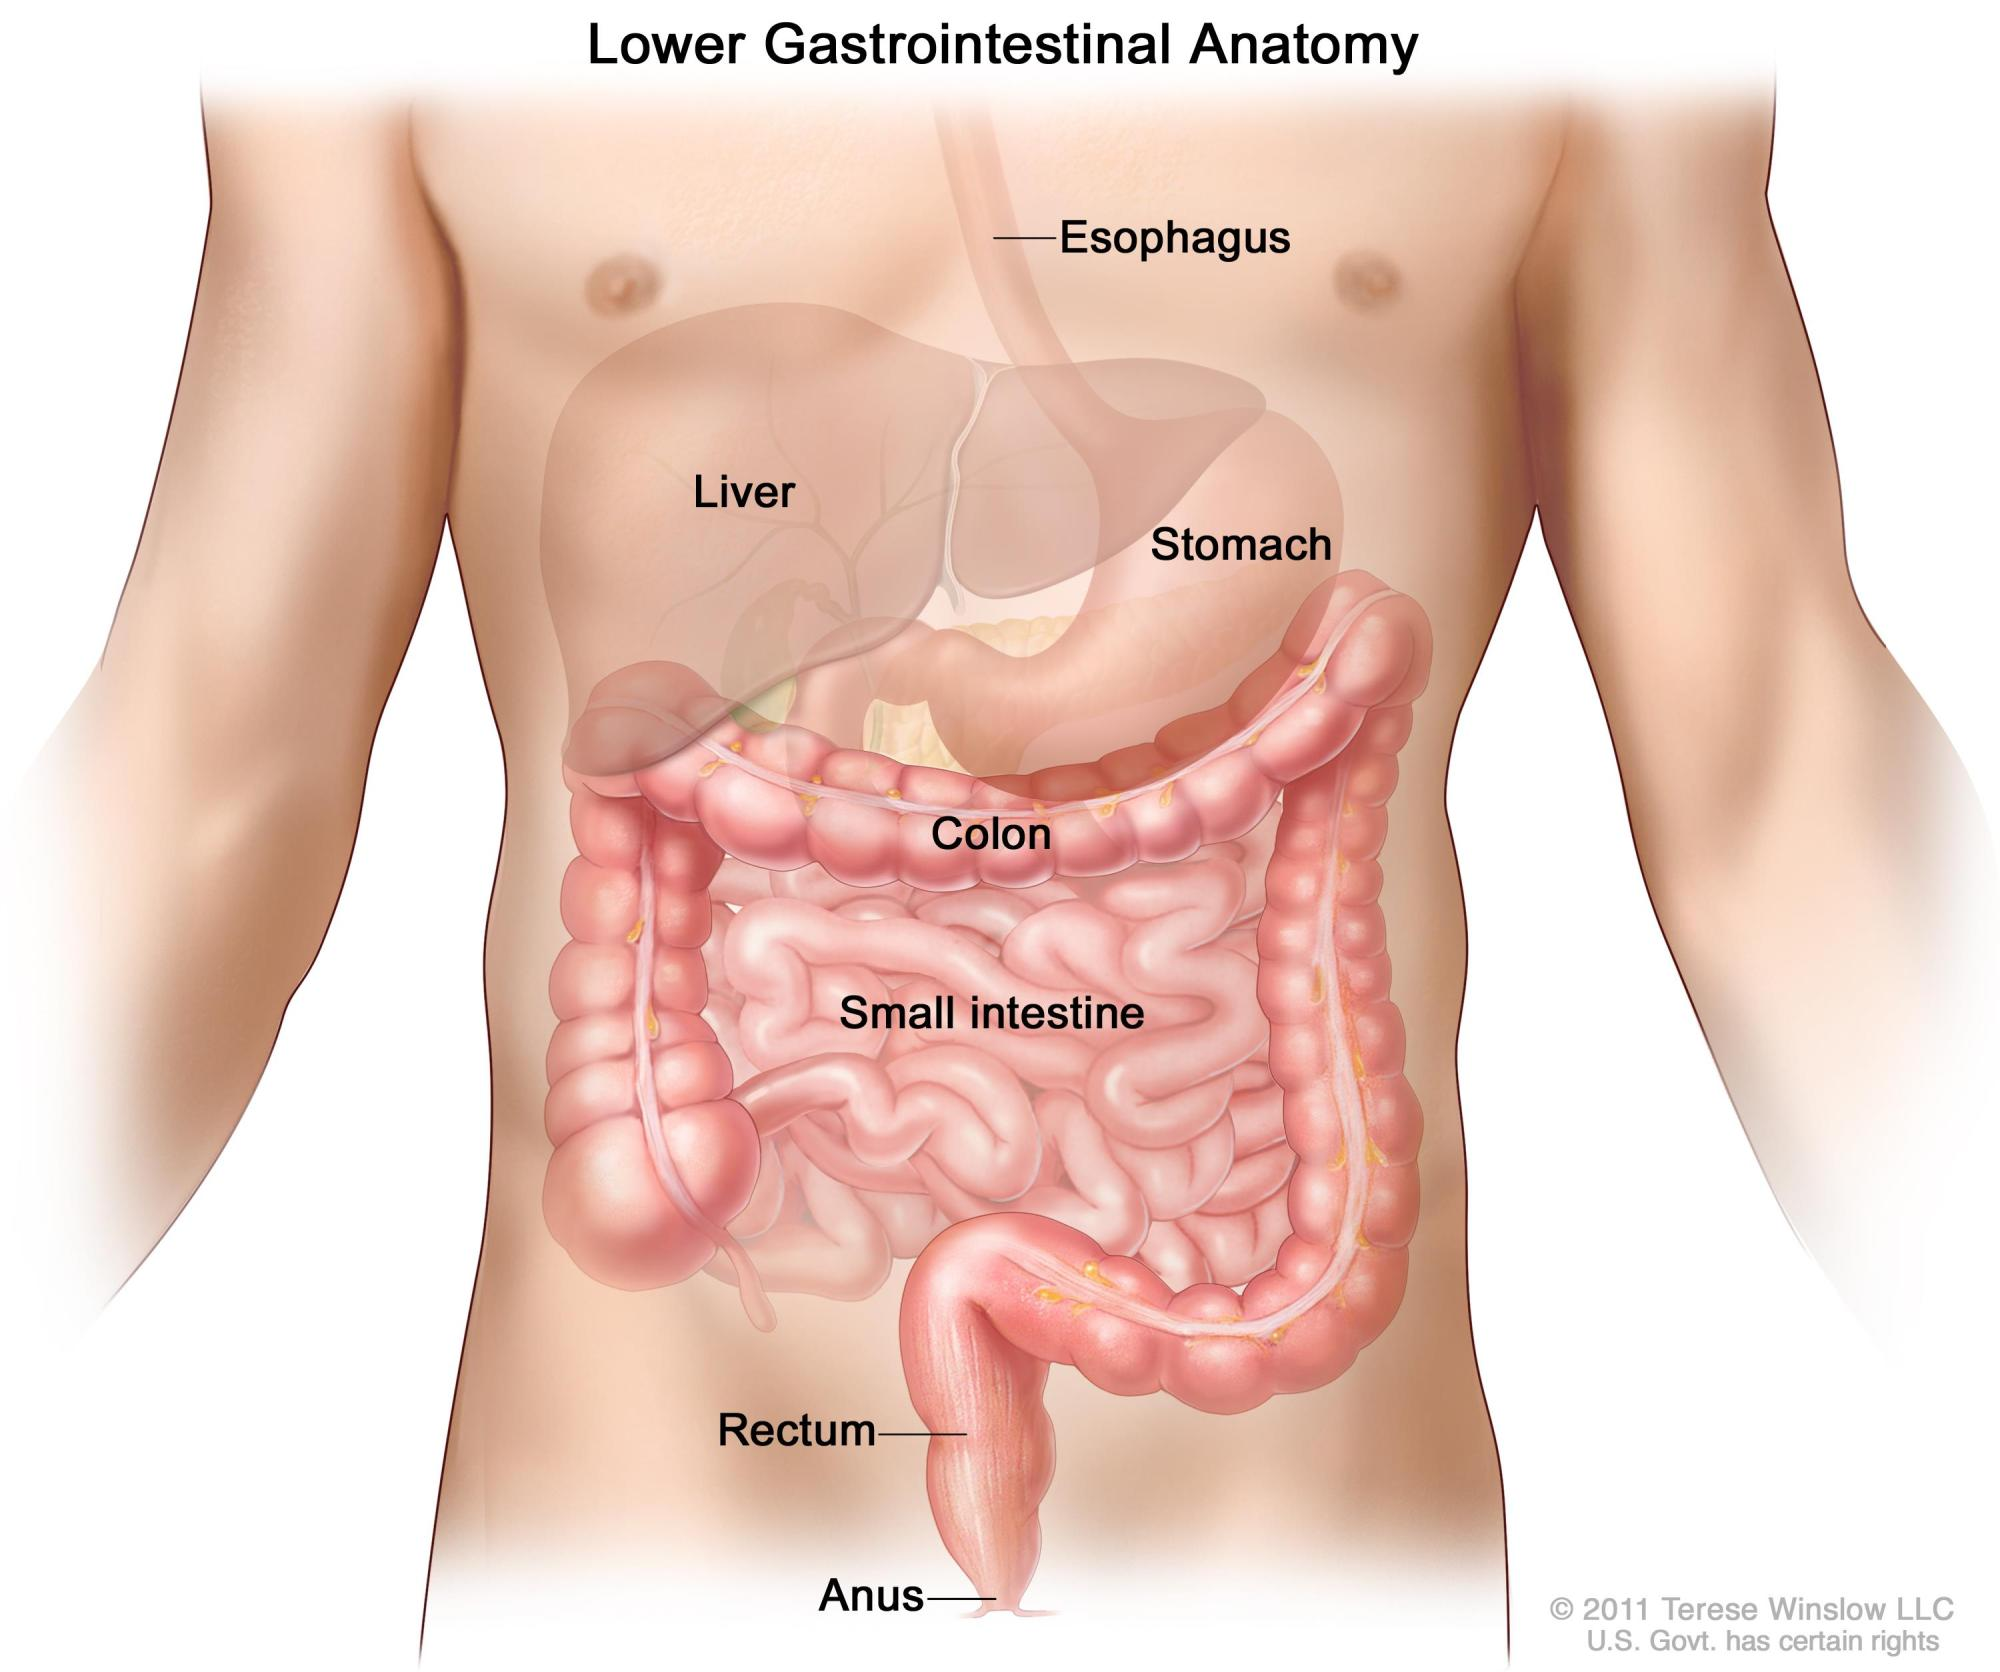 hight resolution of gastrointestinal digestive system anatomy shows esophagus liver stomach colon